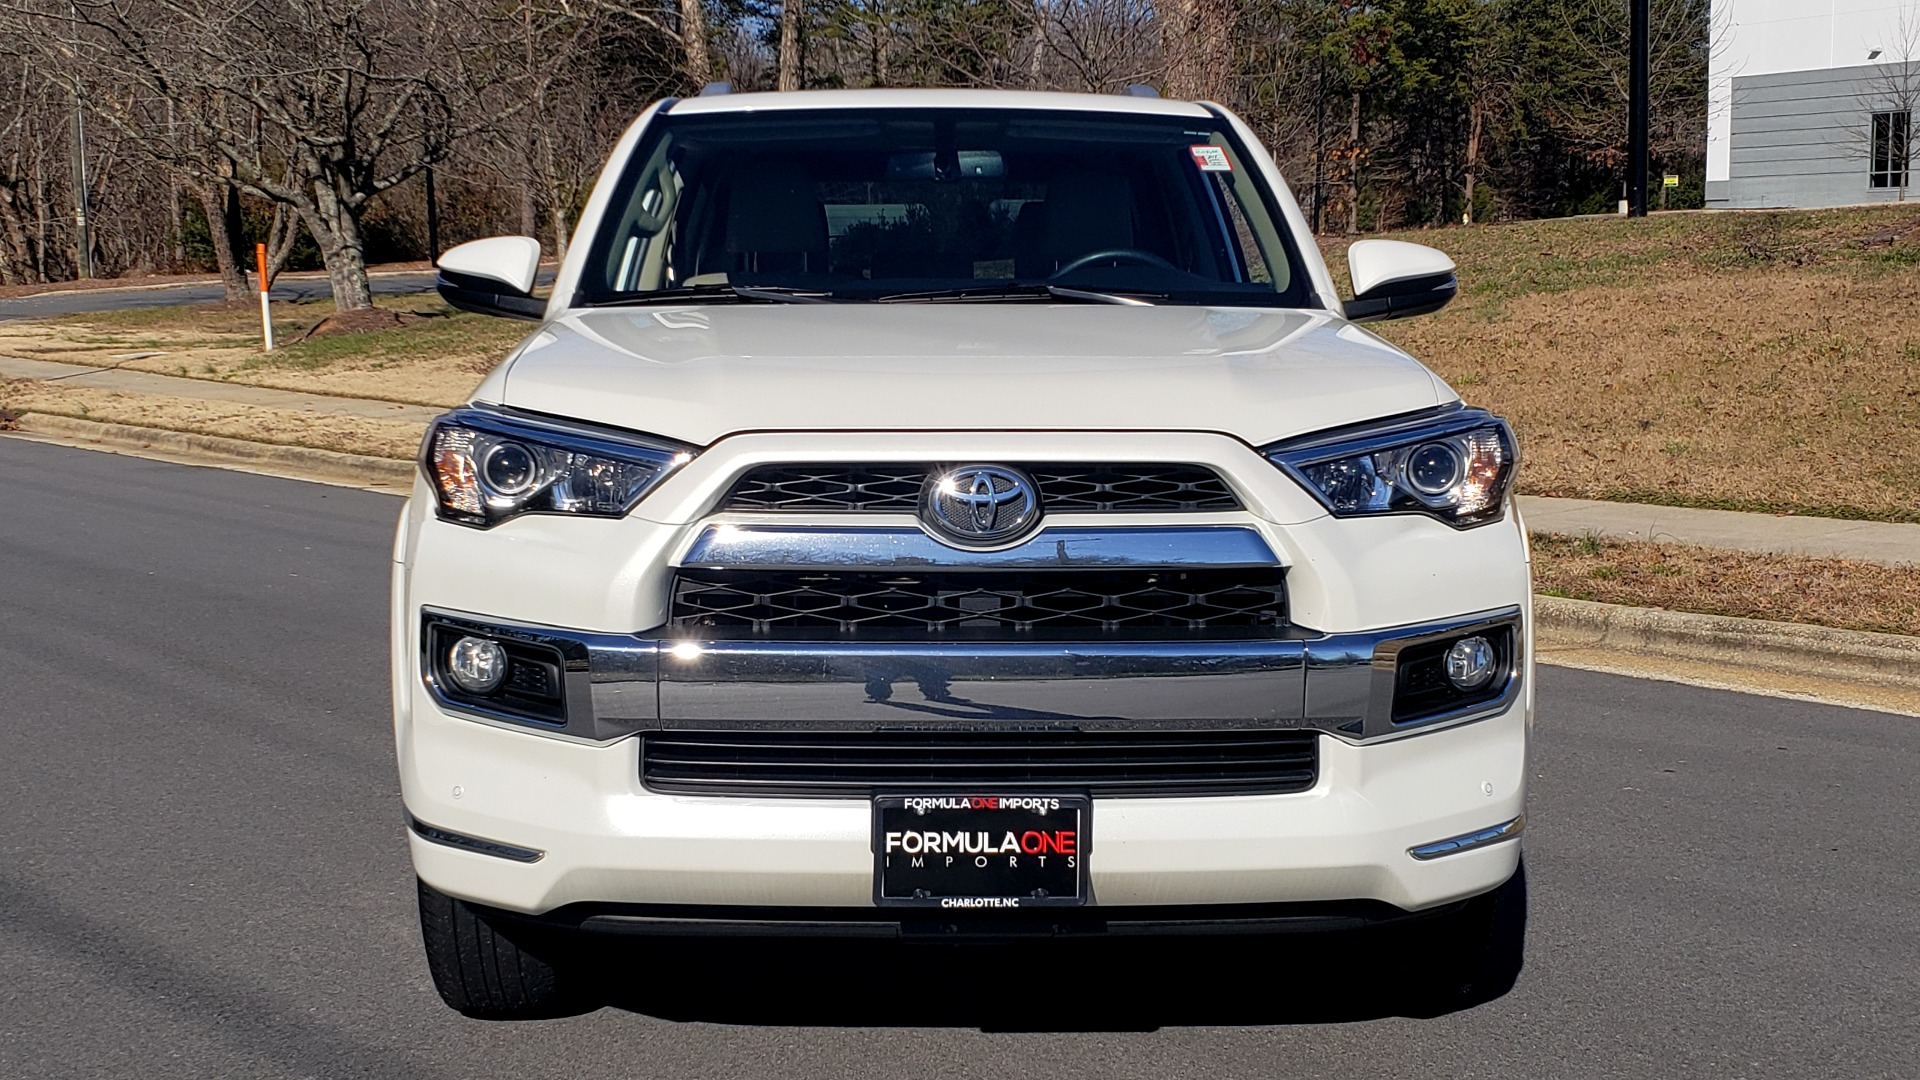 Used 2018 Toyota 4RUNNER LIMITED 4X4 / 4.0L V6 / AUTO / NAV / SUNROOF / JBL AUDIO / REARVIEW for sale Sold at Formula Imports in Charlotte NC 28227 18